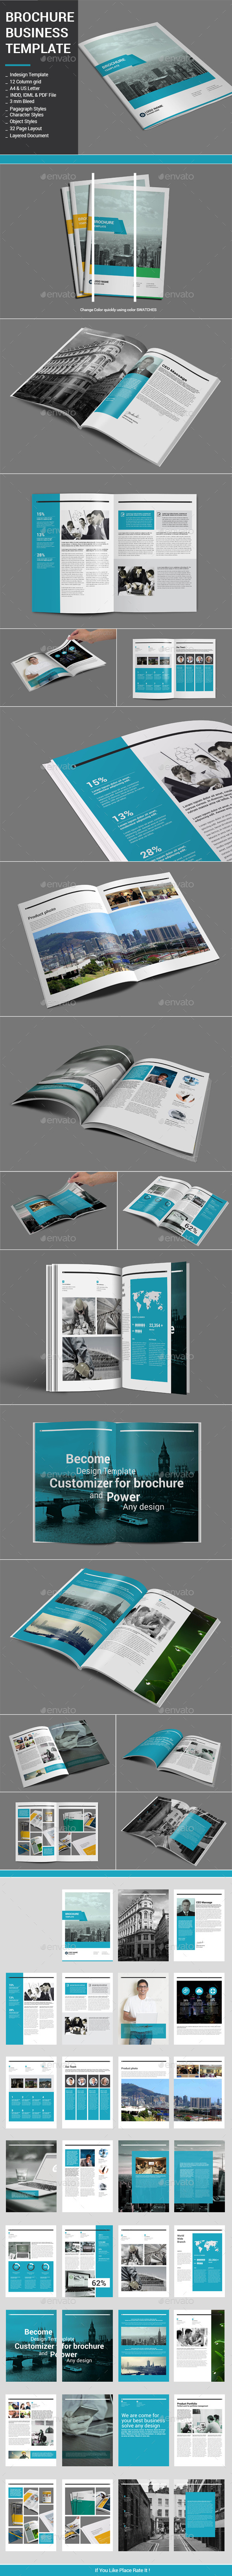 Brochure Business Template - Corporate Brochures